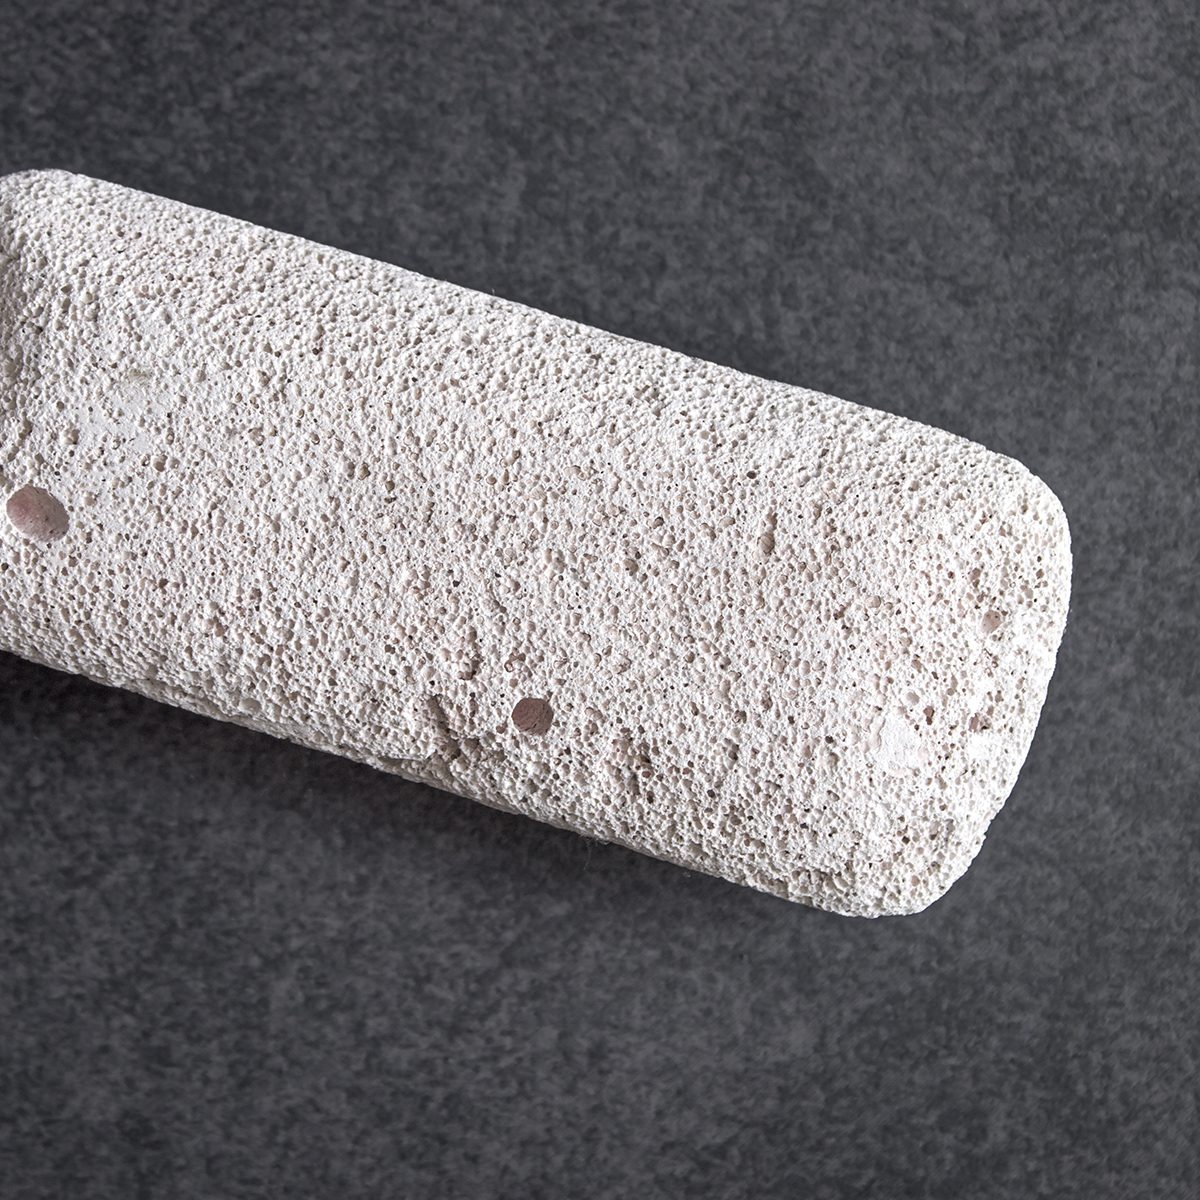 Raw pumice stone on table, light weight and with rough surface.